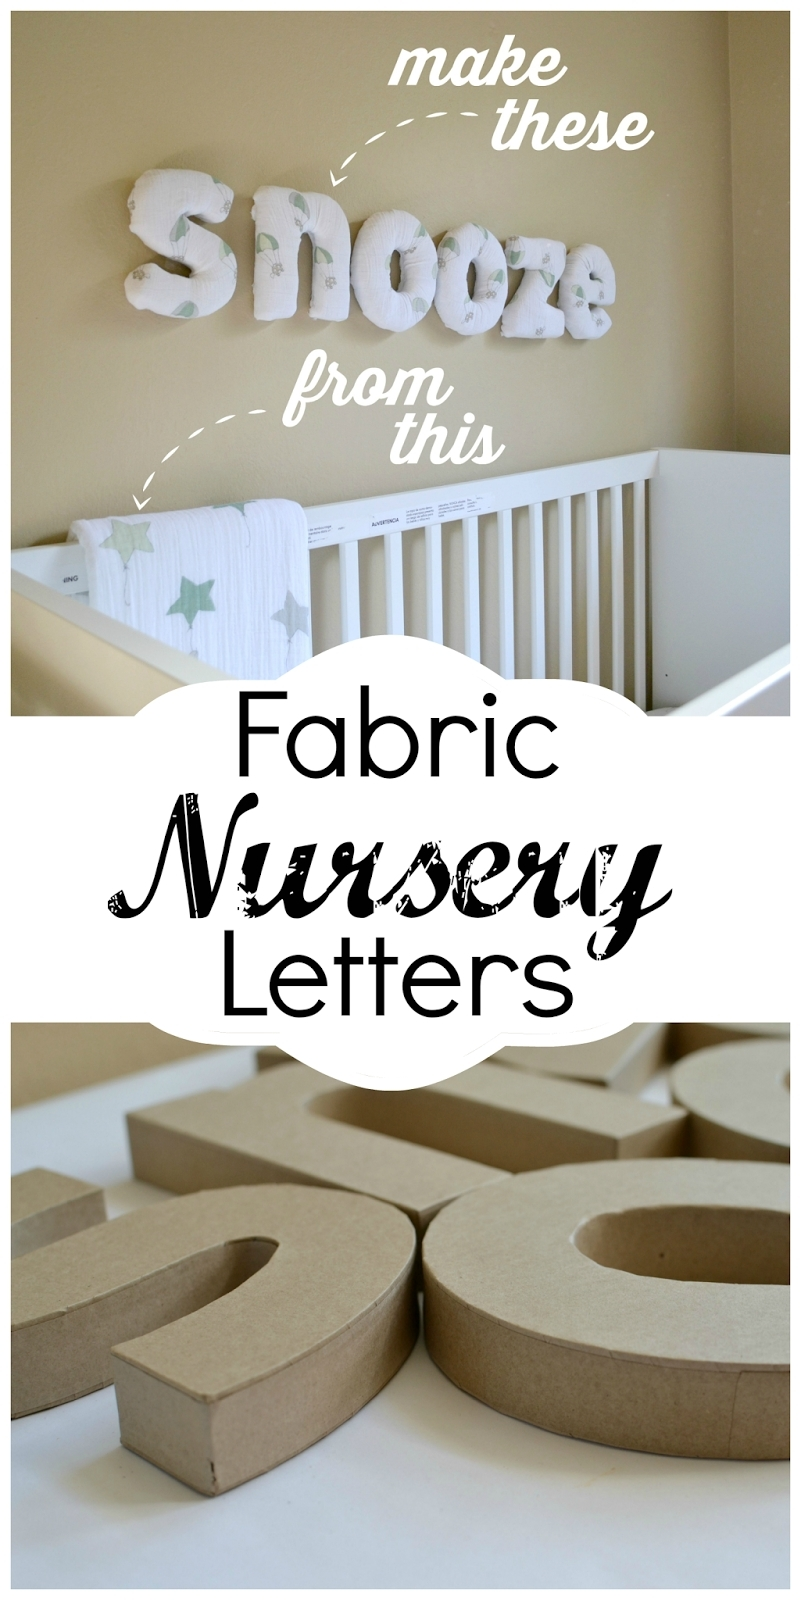 How To Make Easy Diy Fabric Letters For Your Nursery | Fabric Throughout Current Fabric Name Wall Art (Gallery 10 of 15)